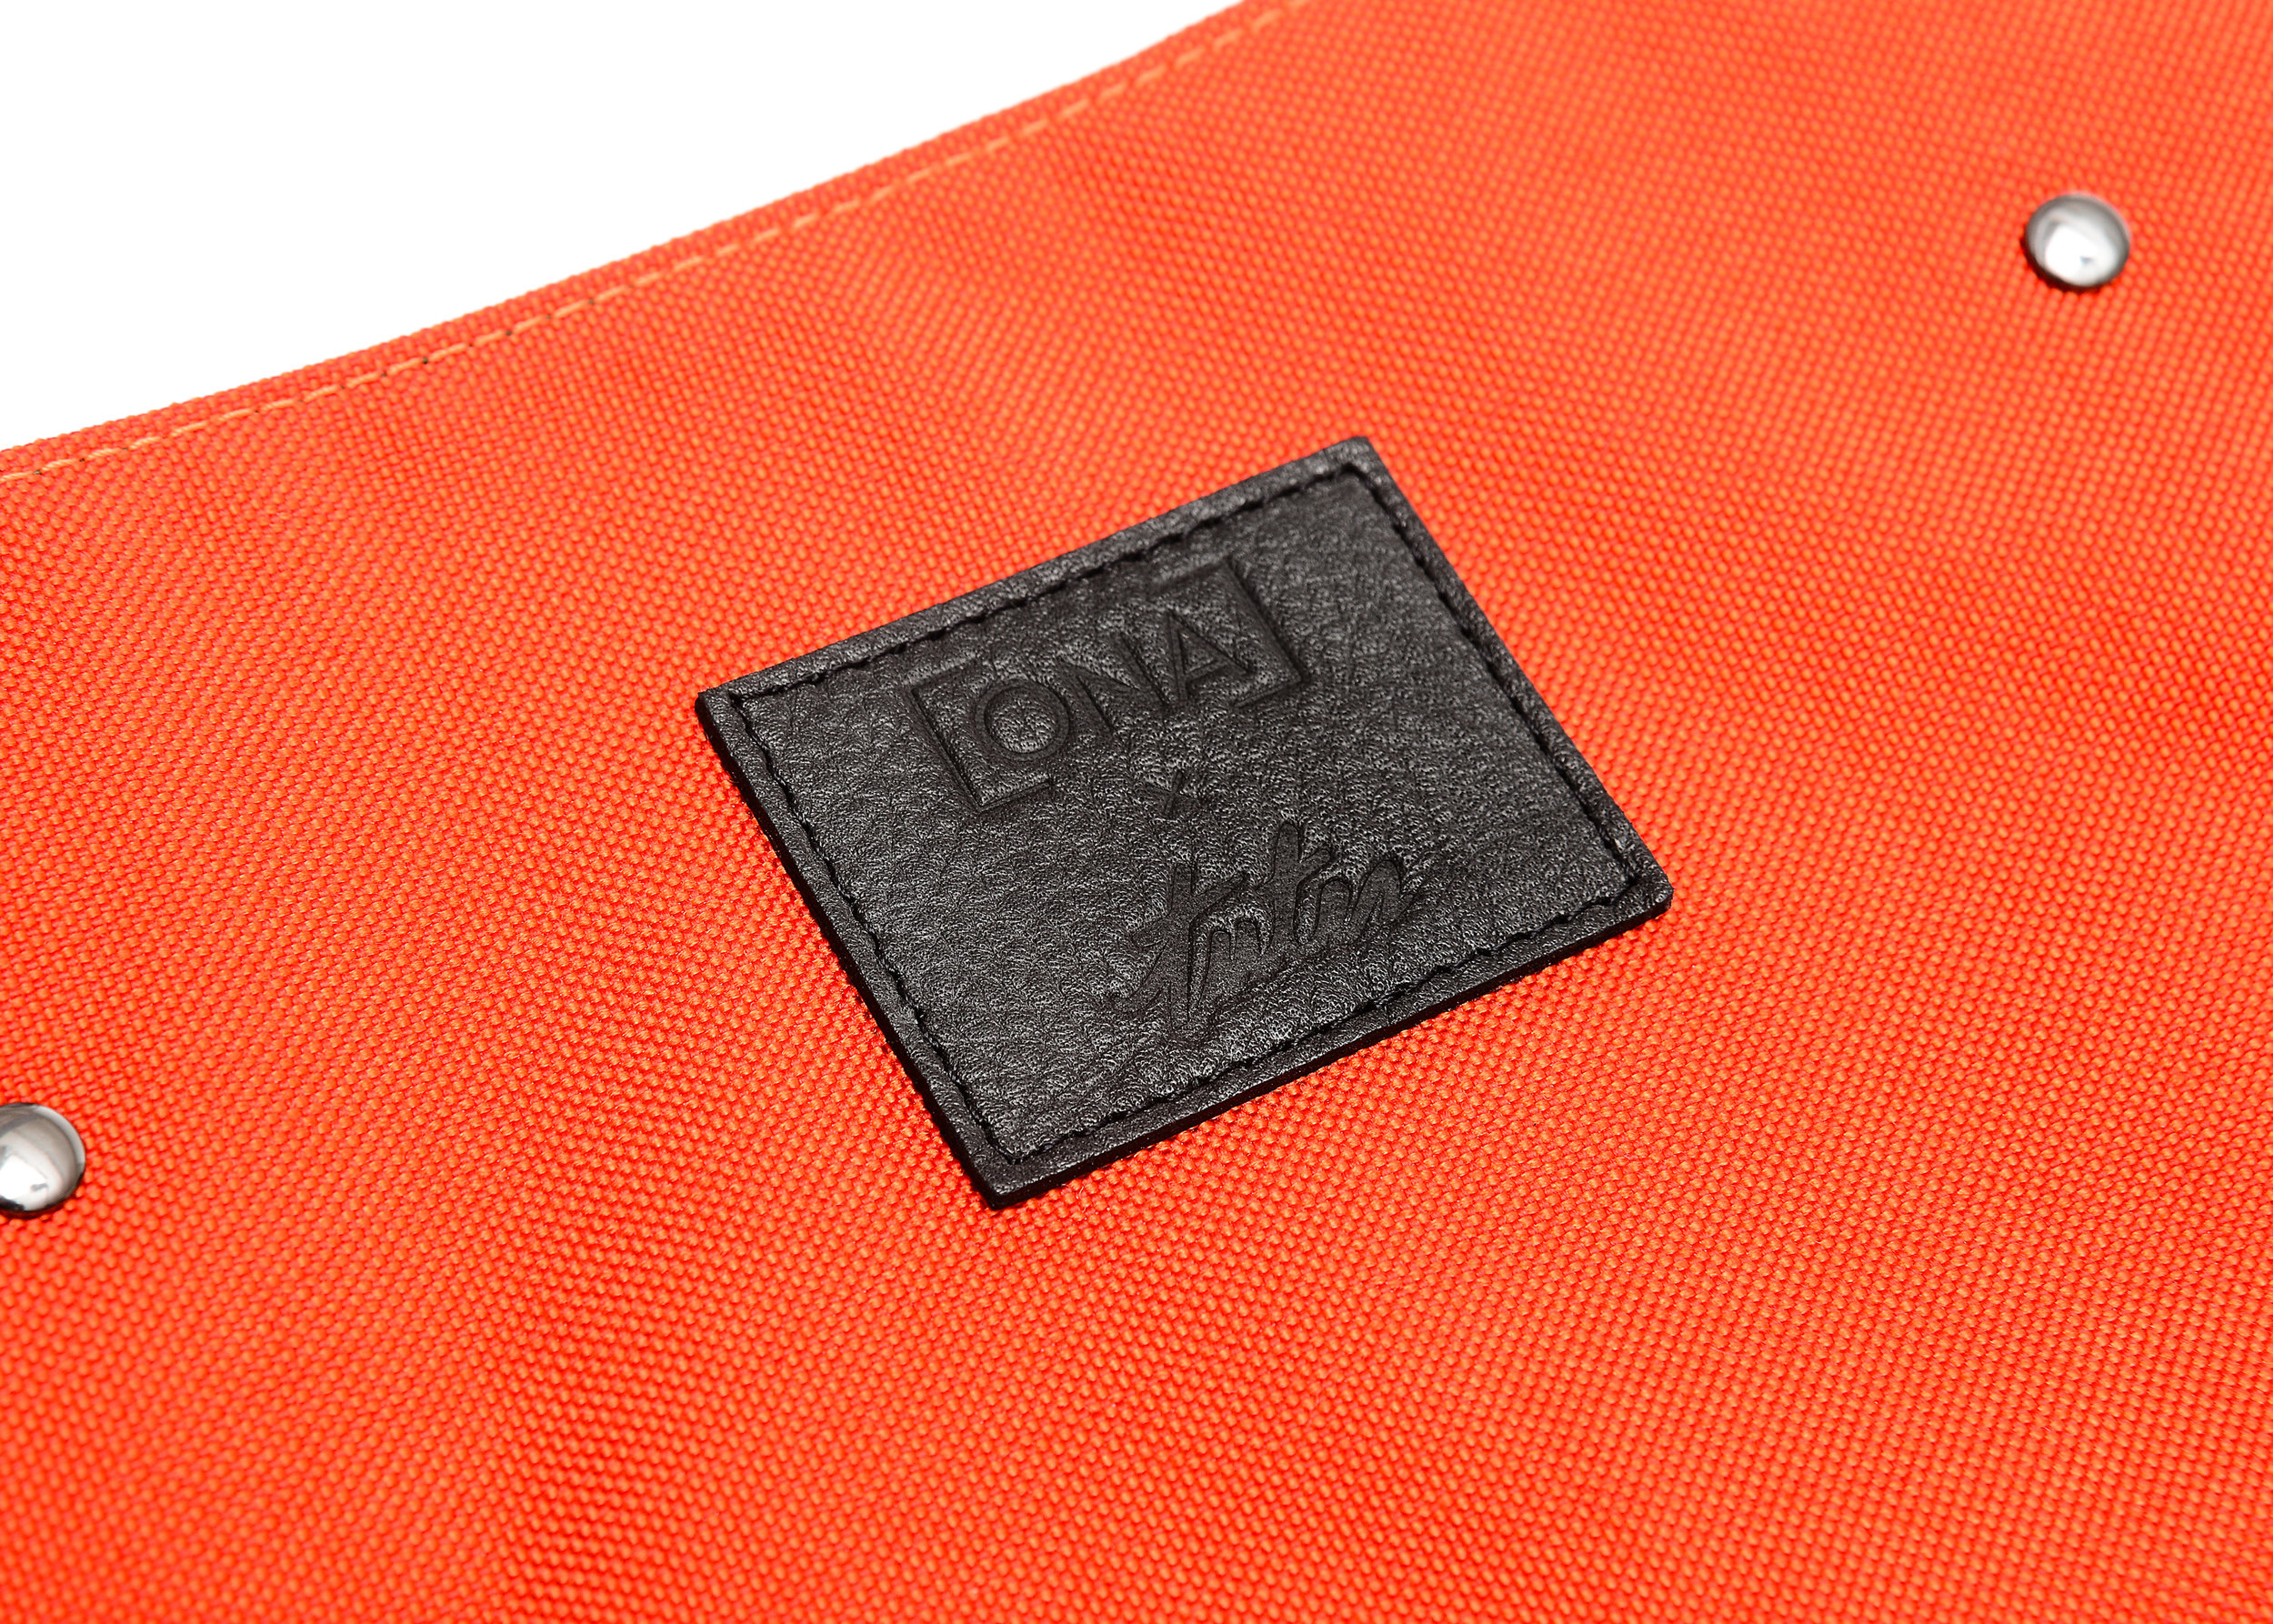 ONA_Tutes_Camps_Bay_Backpack_Detail_2.jpg